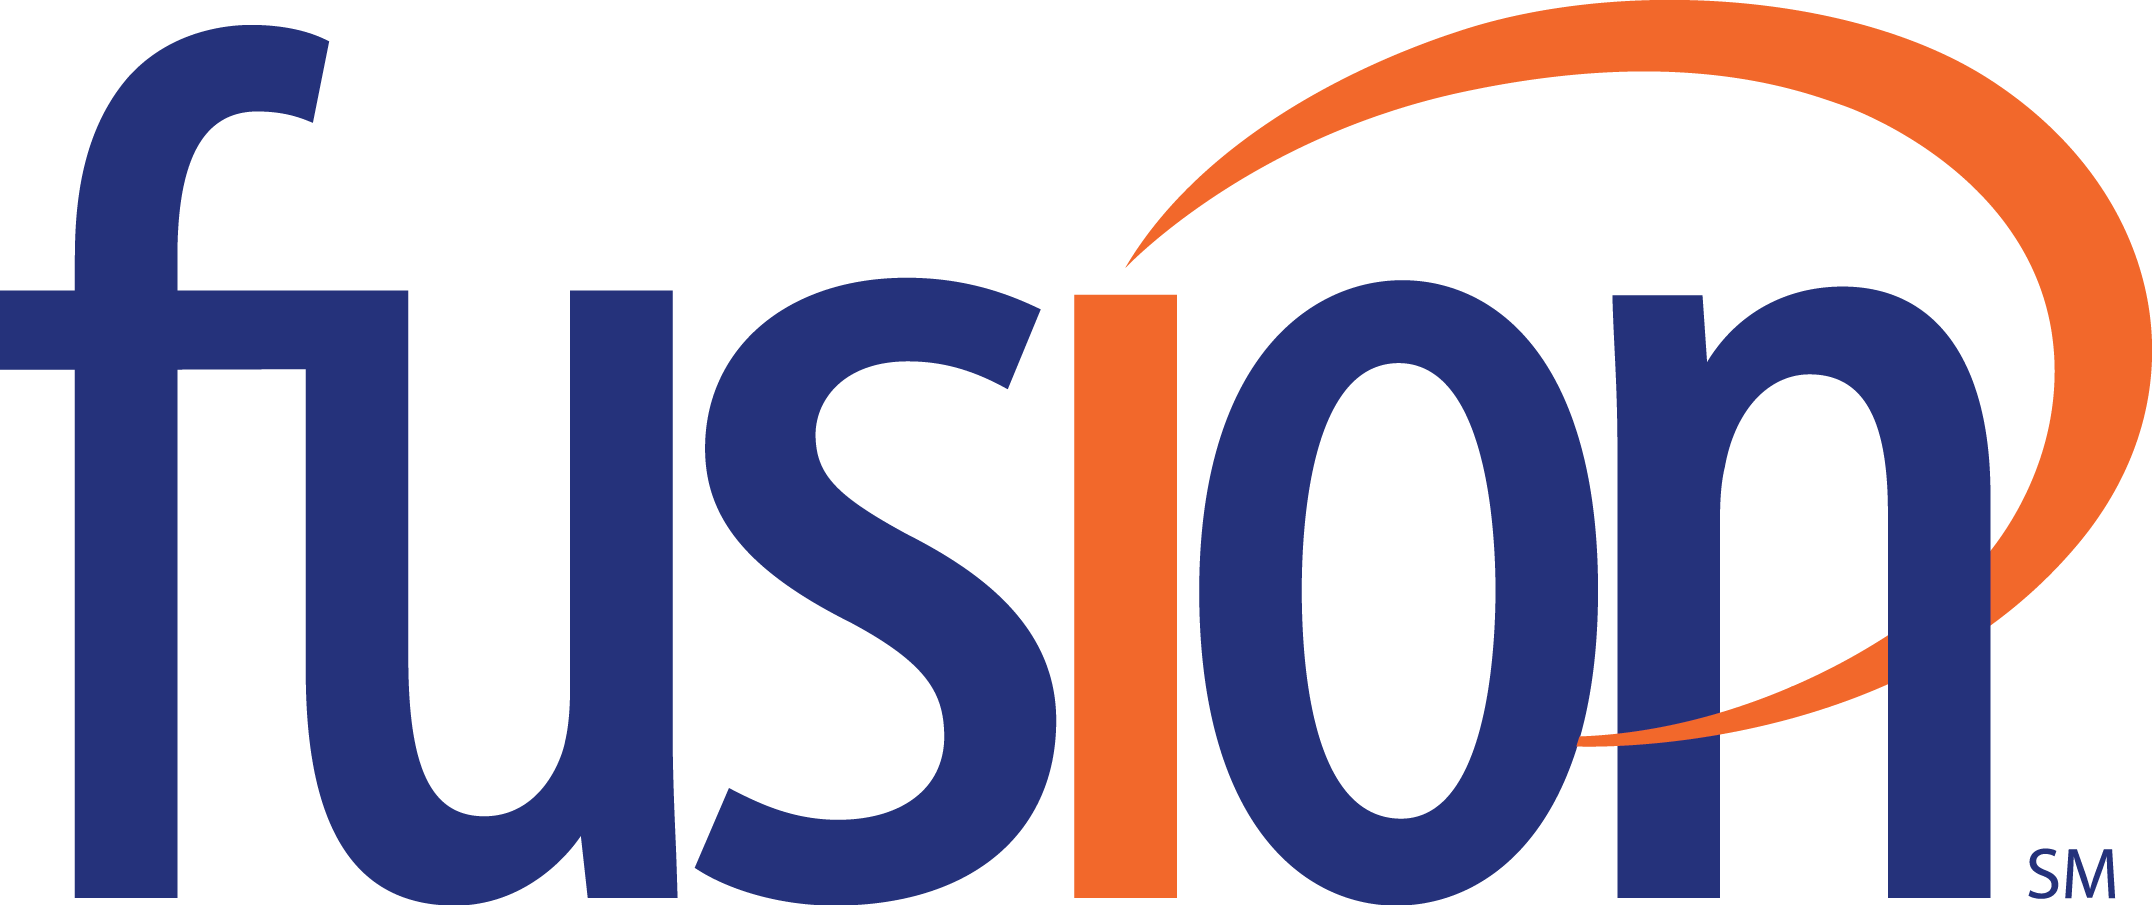 Fusion Channel Partner Logo